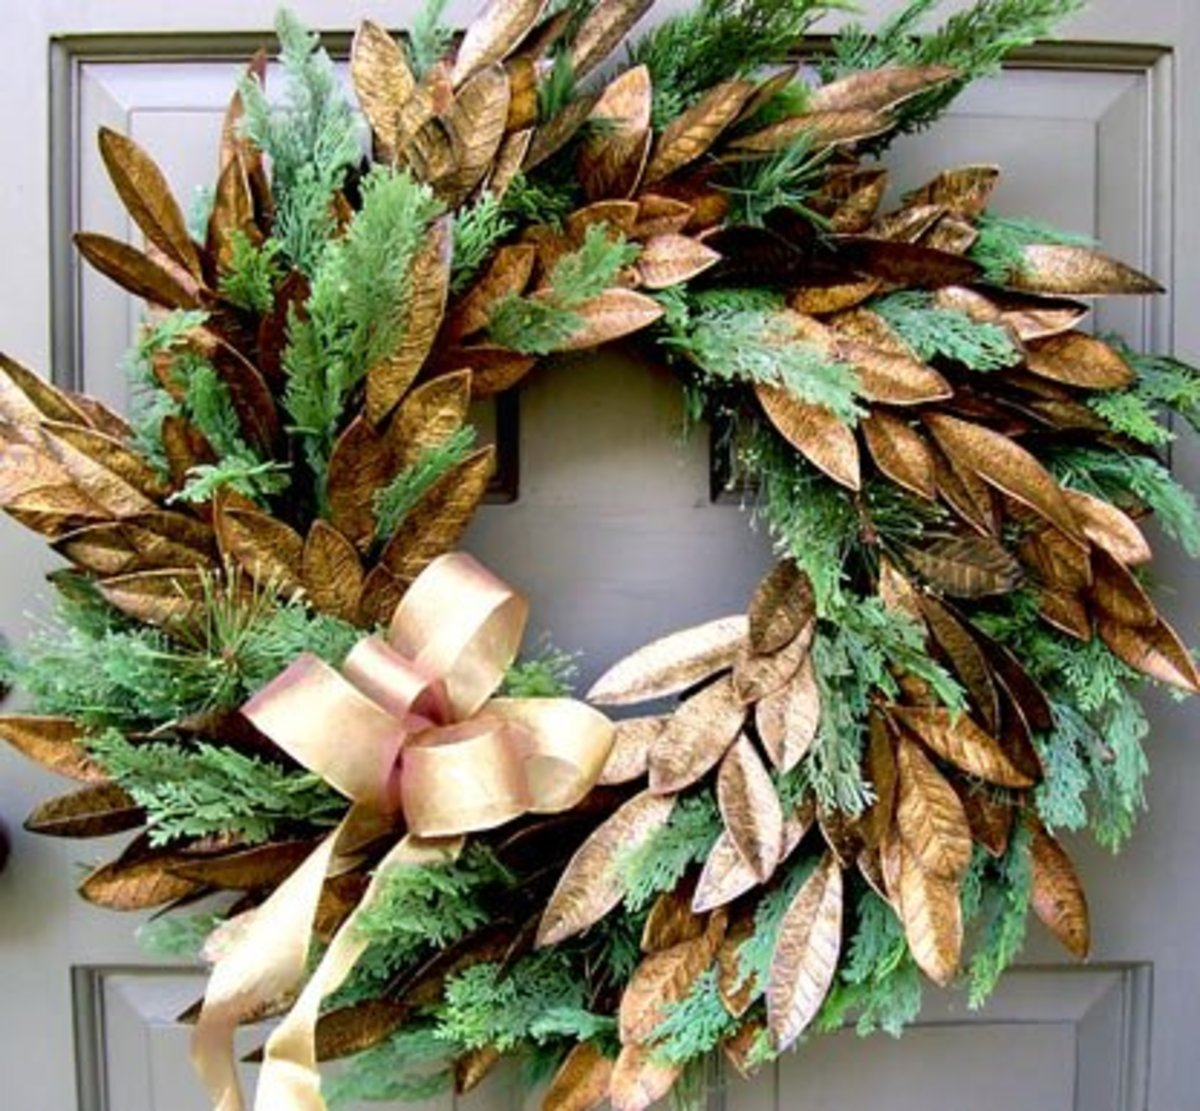 10 Ways to Decorate Evergreen Wreaths  Decoration Ideas for the     One of the most popular Christmas decorations is the evergreen wreath